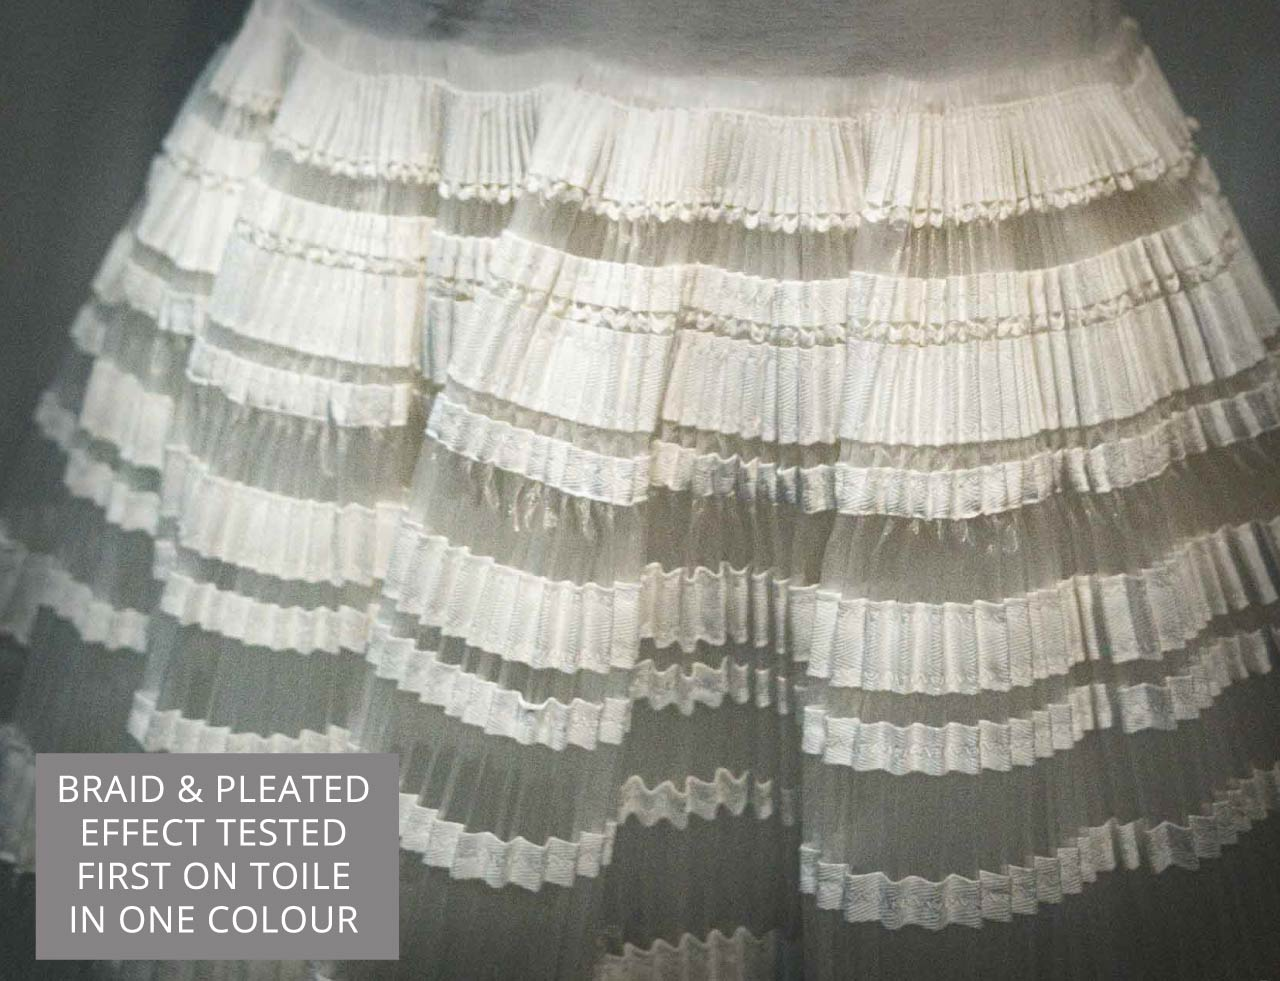 The Christian Dior Toile Room | The Cutting Class. Toile of Christian Dior by Raf Simons, Haute Couture, Spring-Summer 2015. Detail of how trim and pleating has been tested on the toile.